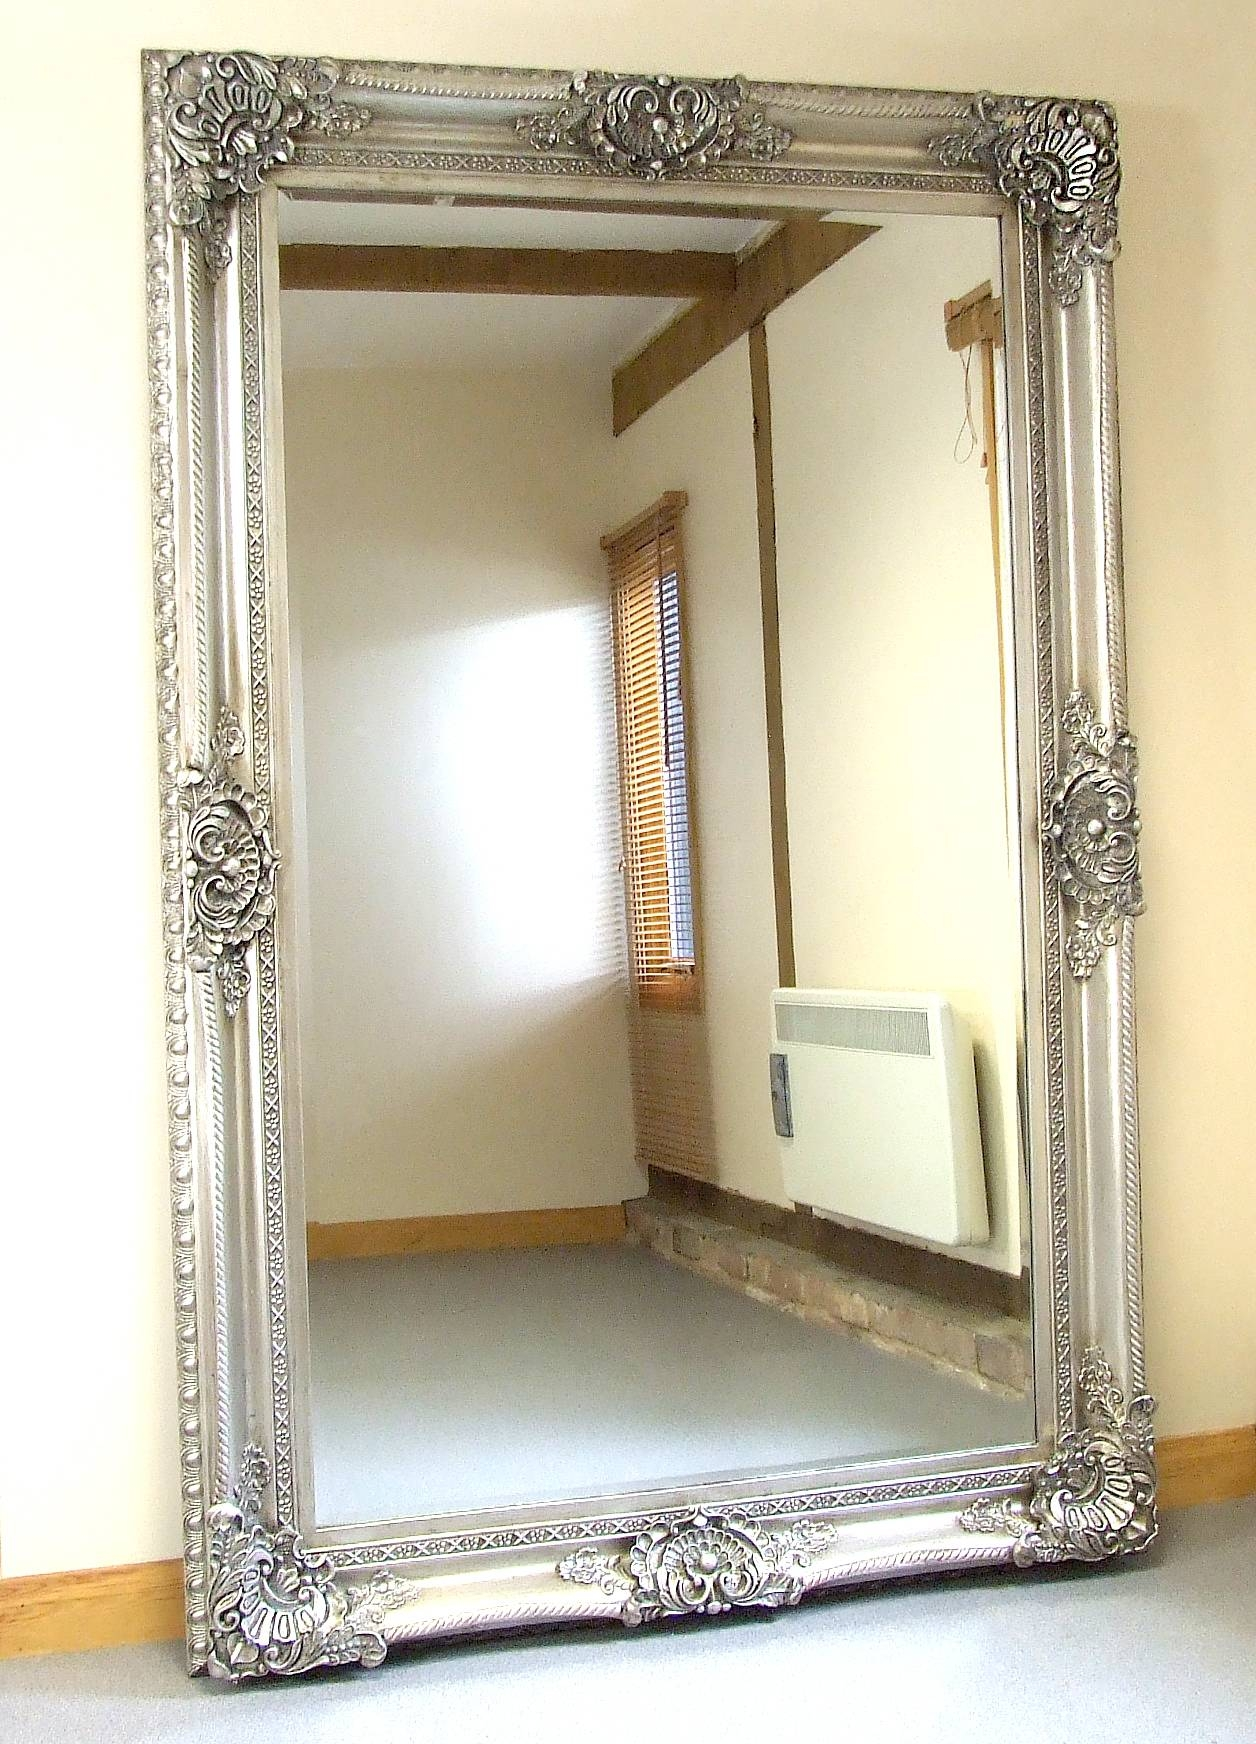 Flooring : Impressive Ornate Floor Mirror Photo Design Antique regarding Antique French Floor Mirrors (Image 16 of 25)